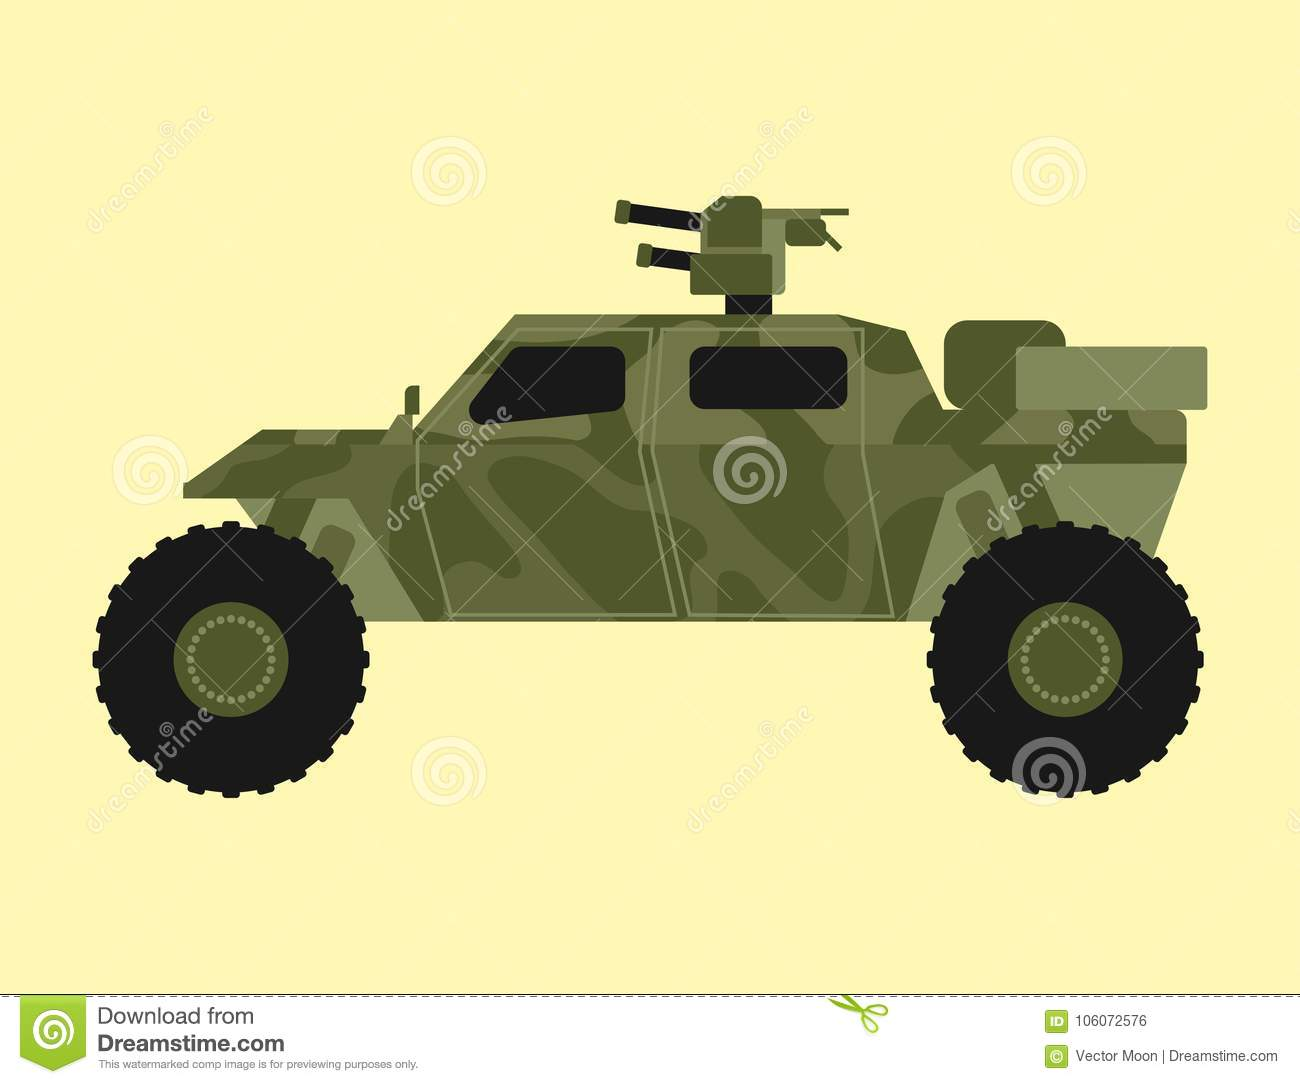 download military transport technic army war tank industry technic armor system armored personnel camouflage carriers weapon